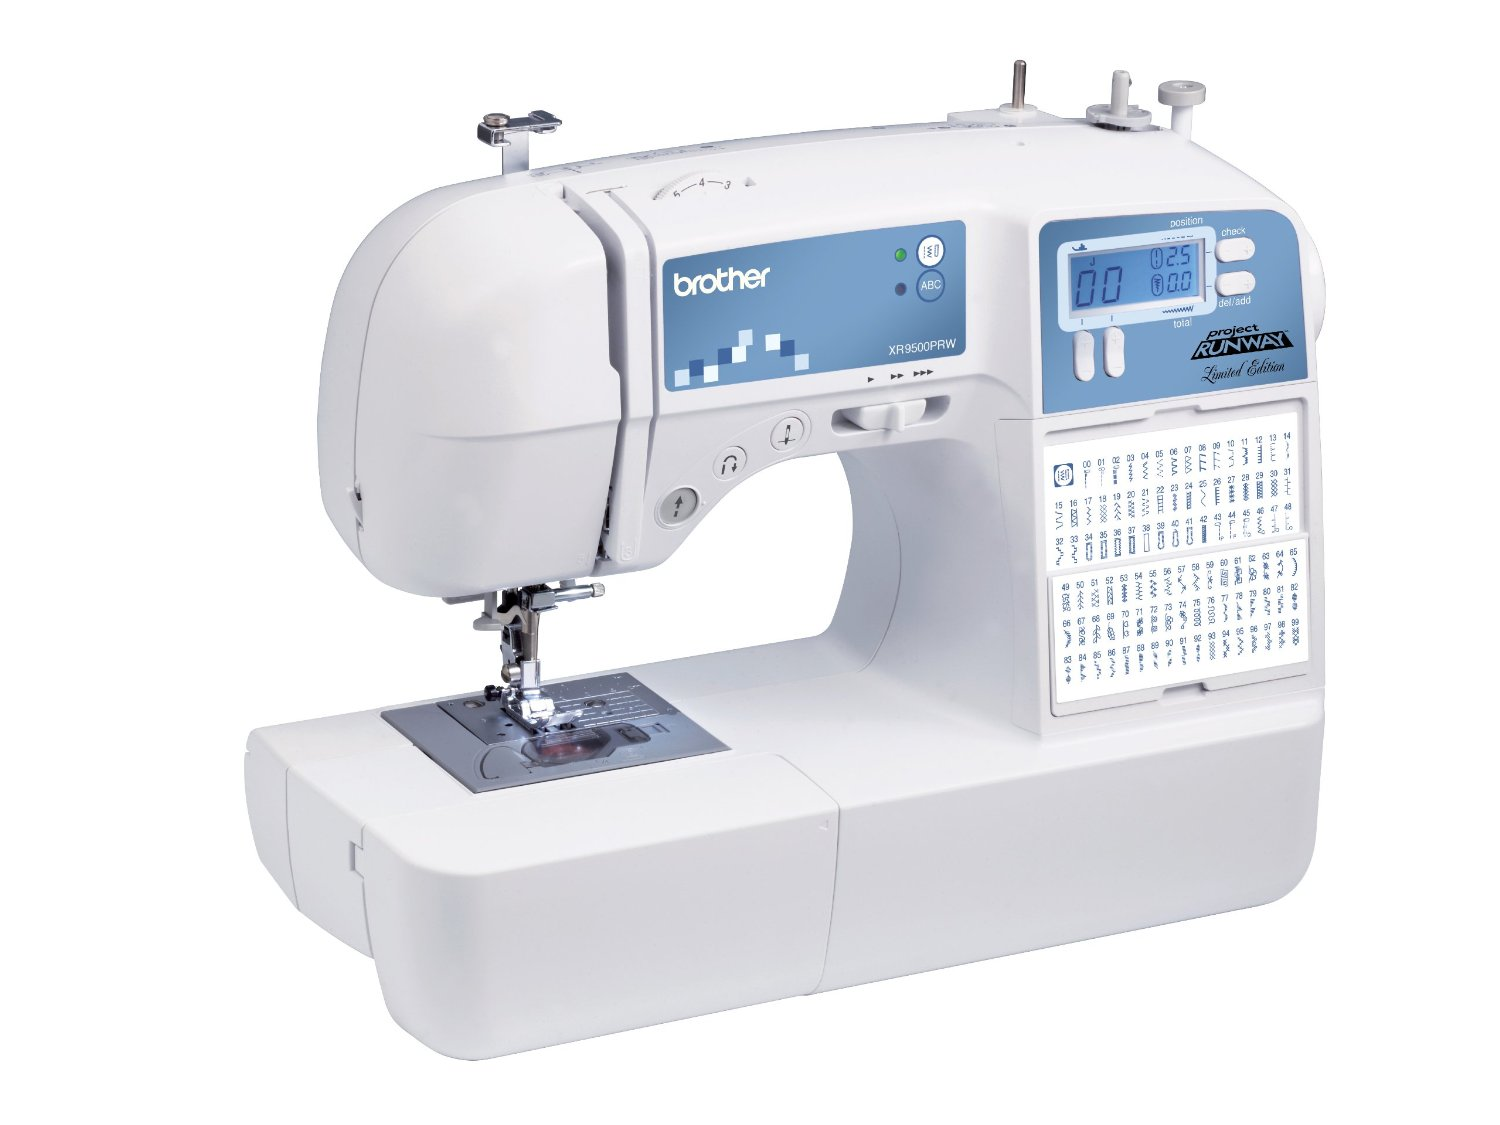 Brother XR9500PRW Sewing Machine Review